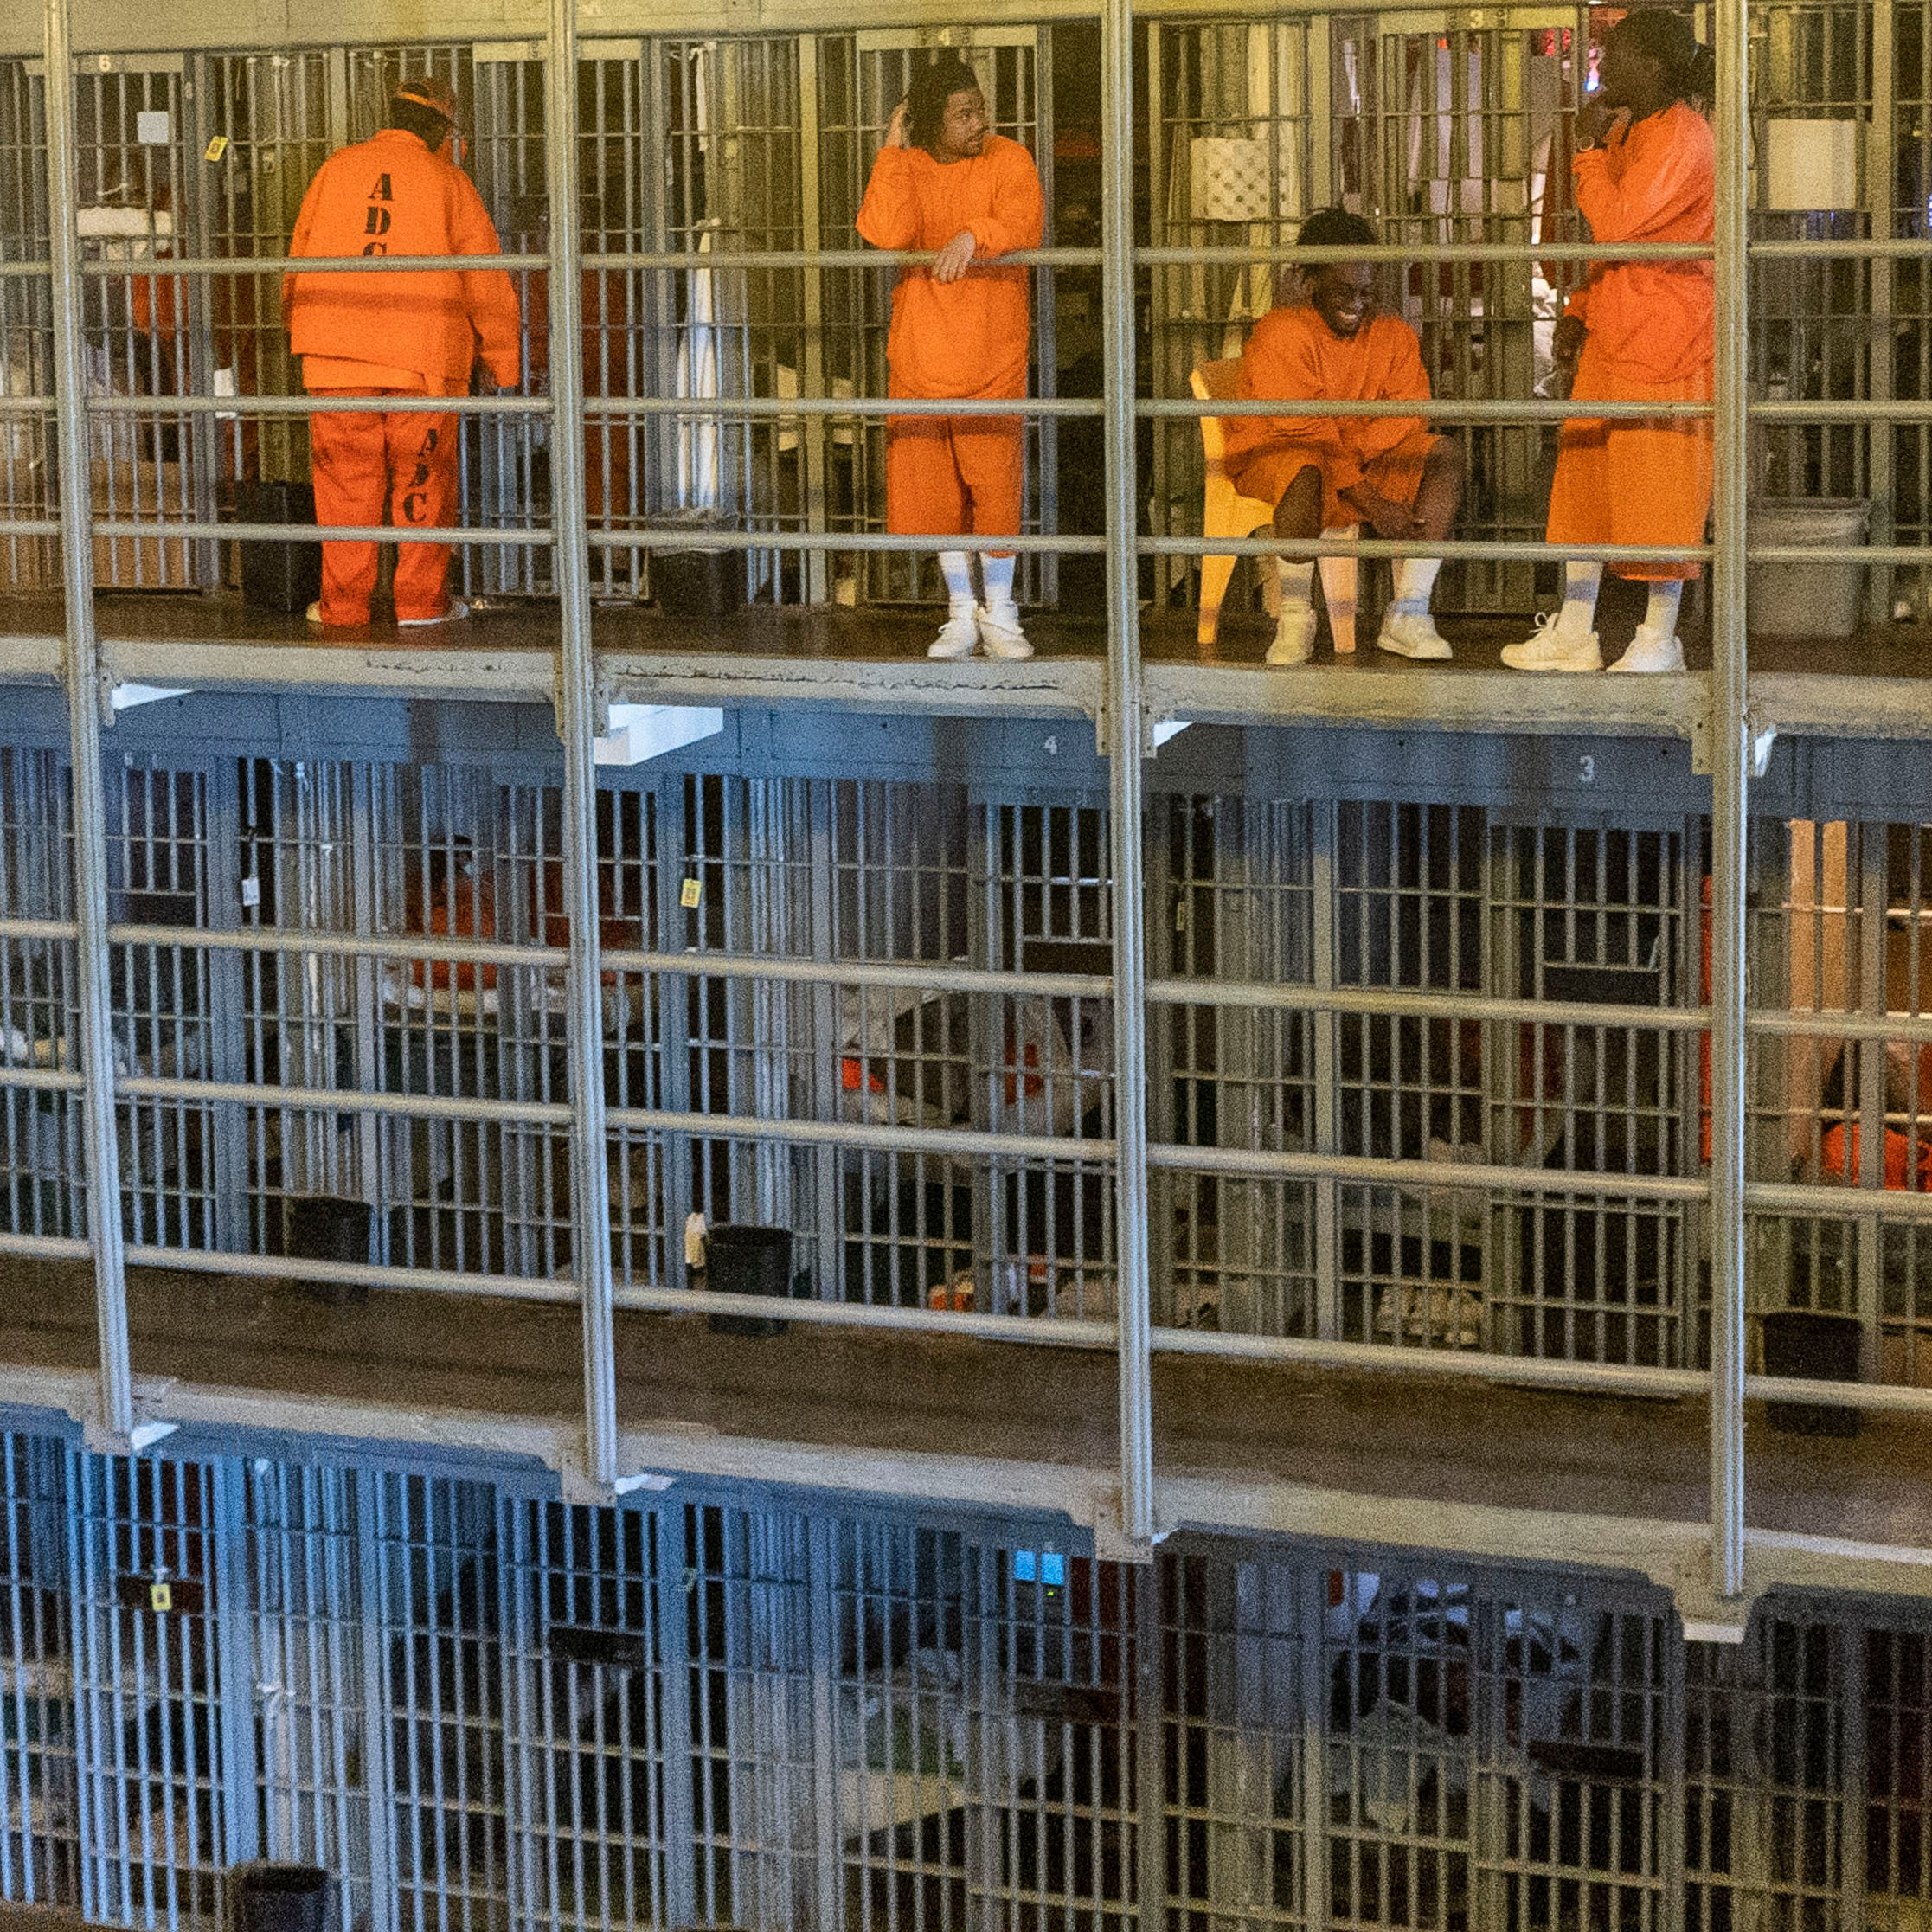 Why are we still disrespecting 'prison guards?' (As in this headline)